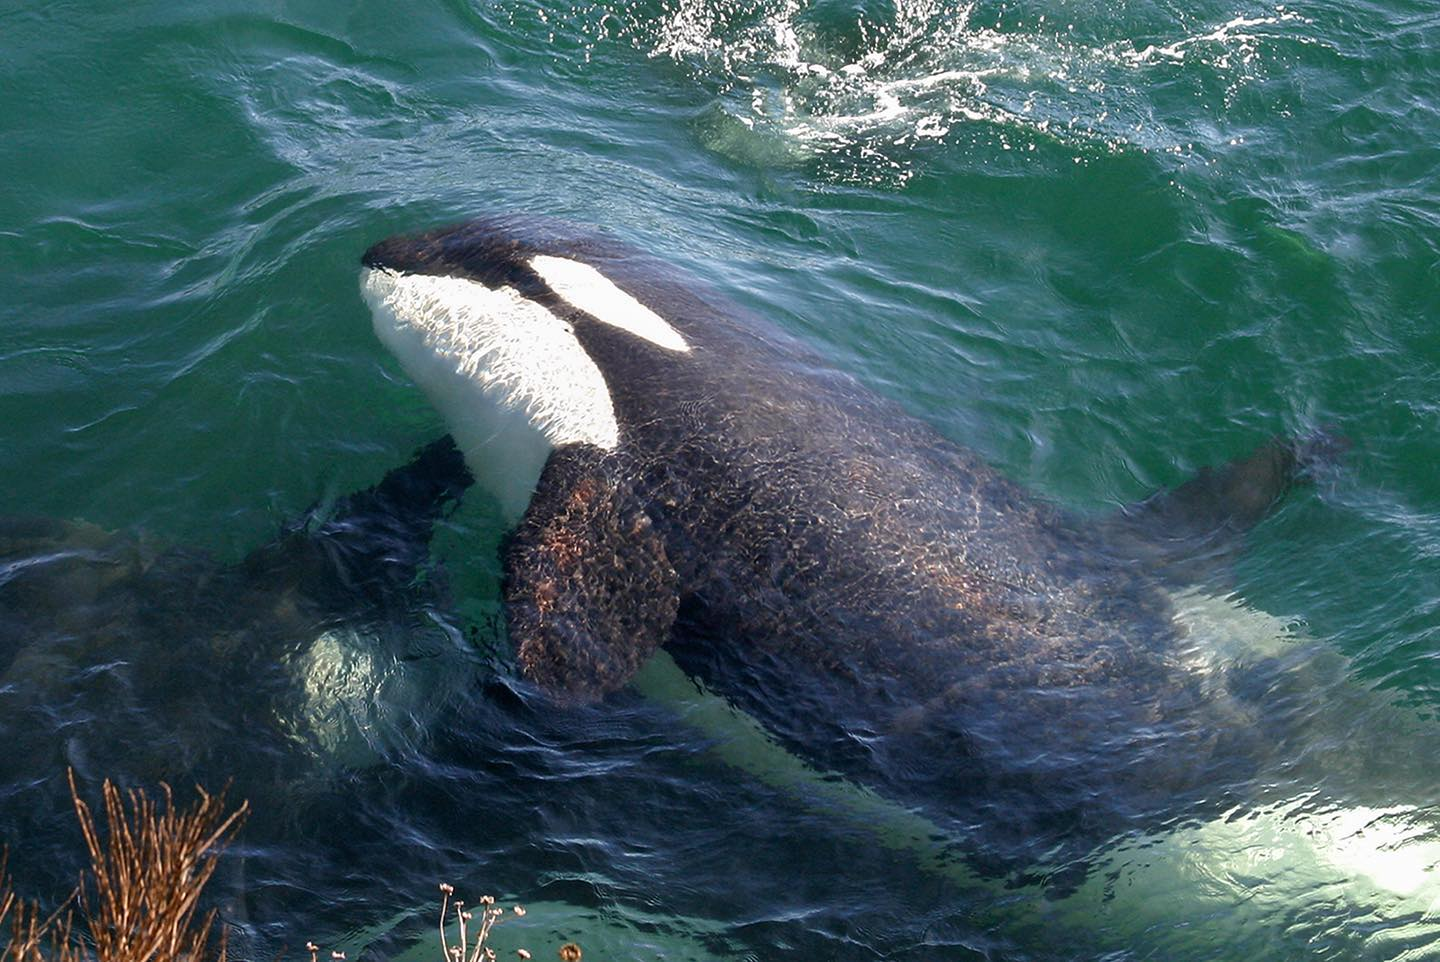 Close up of orca whale, black and white head and body and front fins visible in clear green water